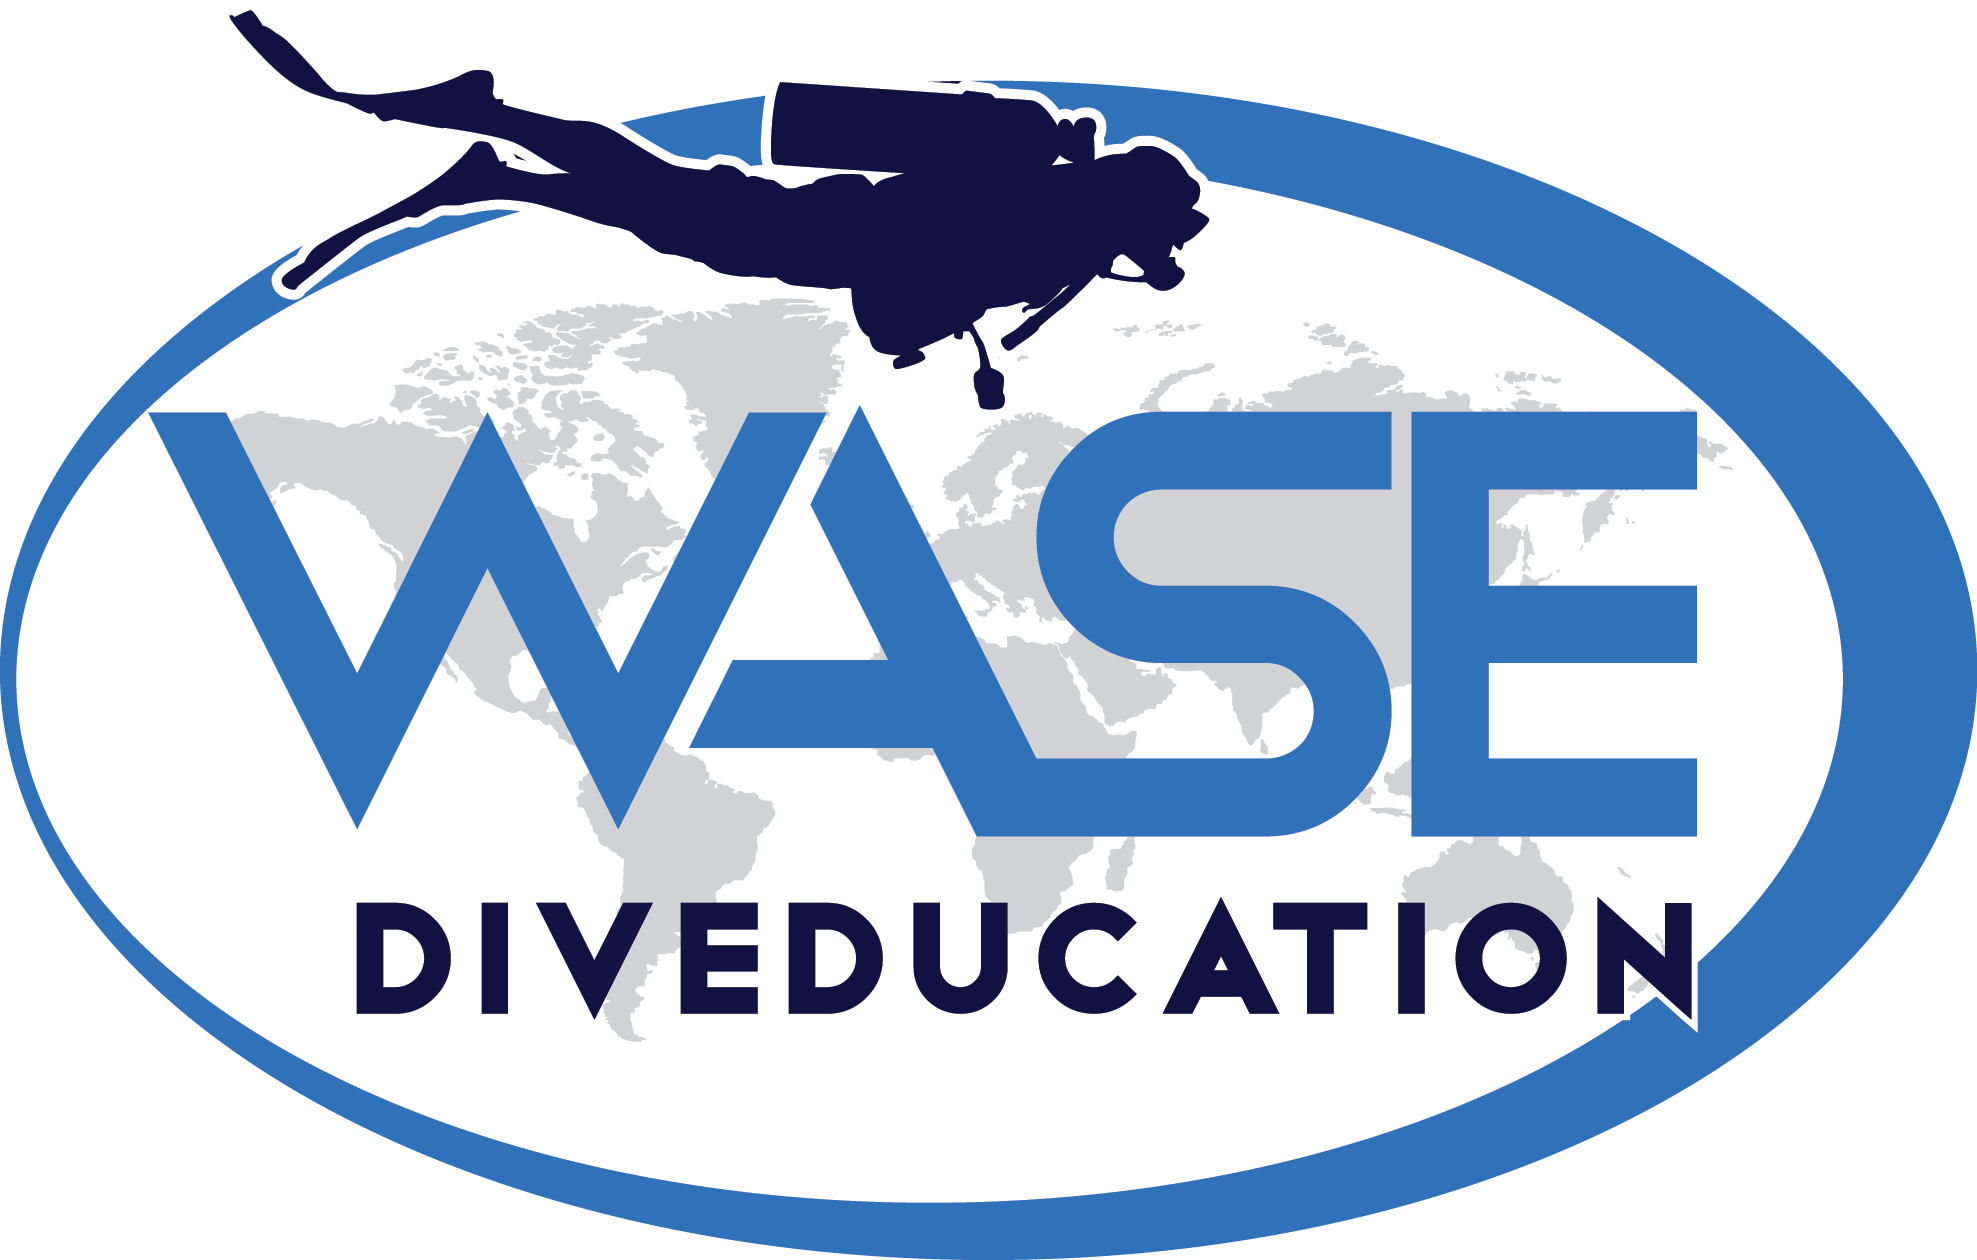 Wase DivEducation